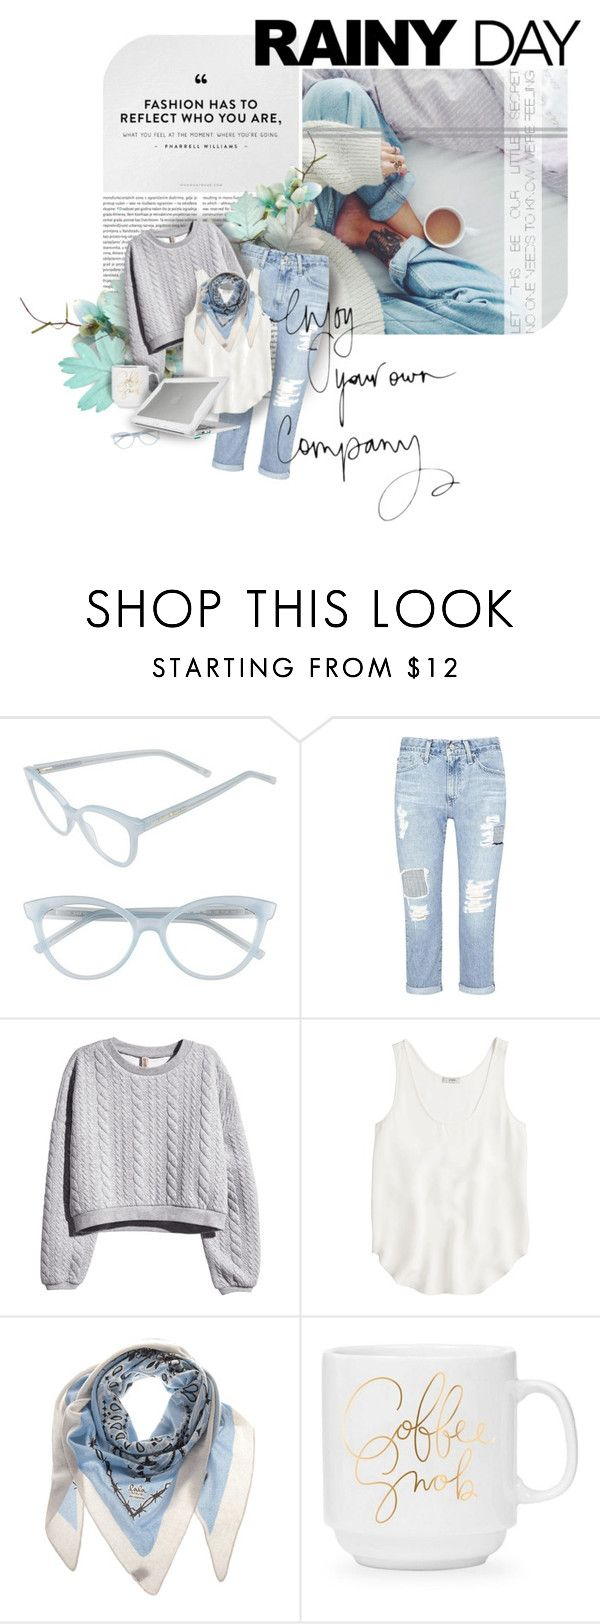 """""""Light Summer"""" by spicemarket ❤ liked on Polyvore featuring Oris, Kate Spade, AG Adriano Goldschmied, H&M, J.Crew, Lala Berlin and Thule"""